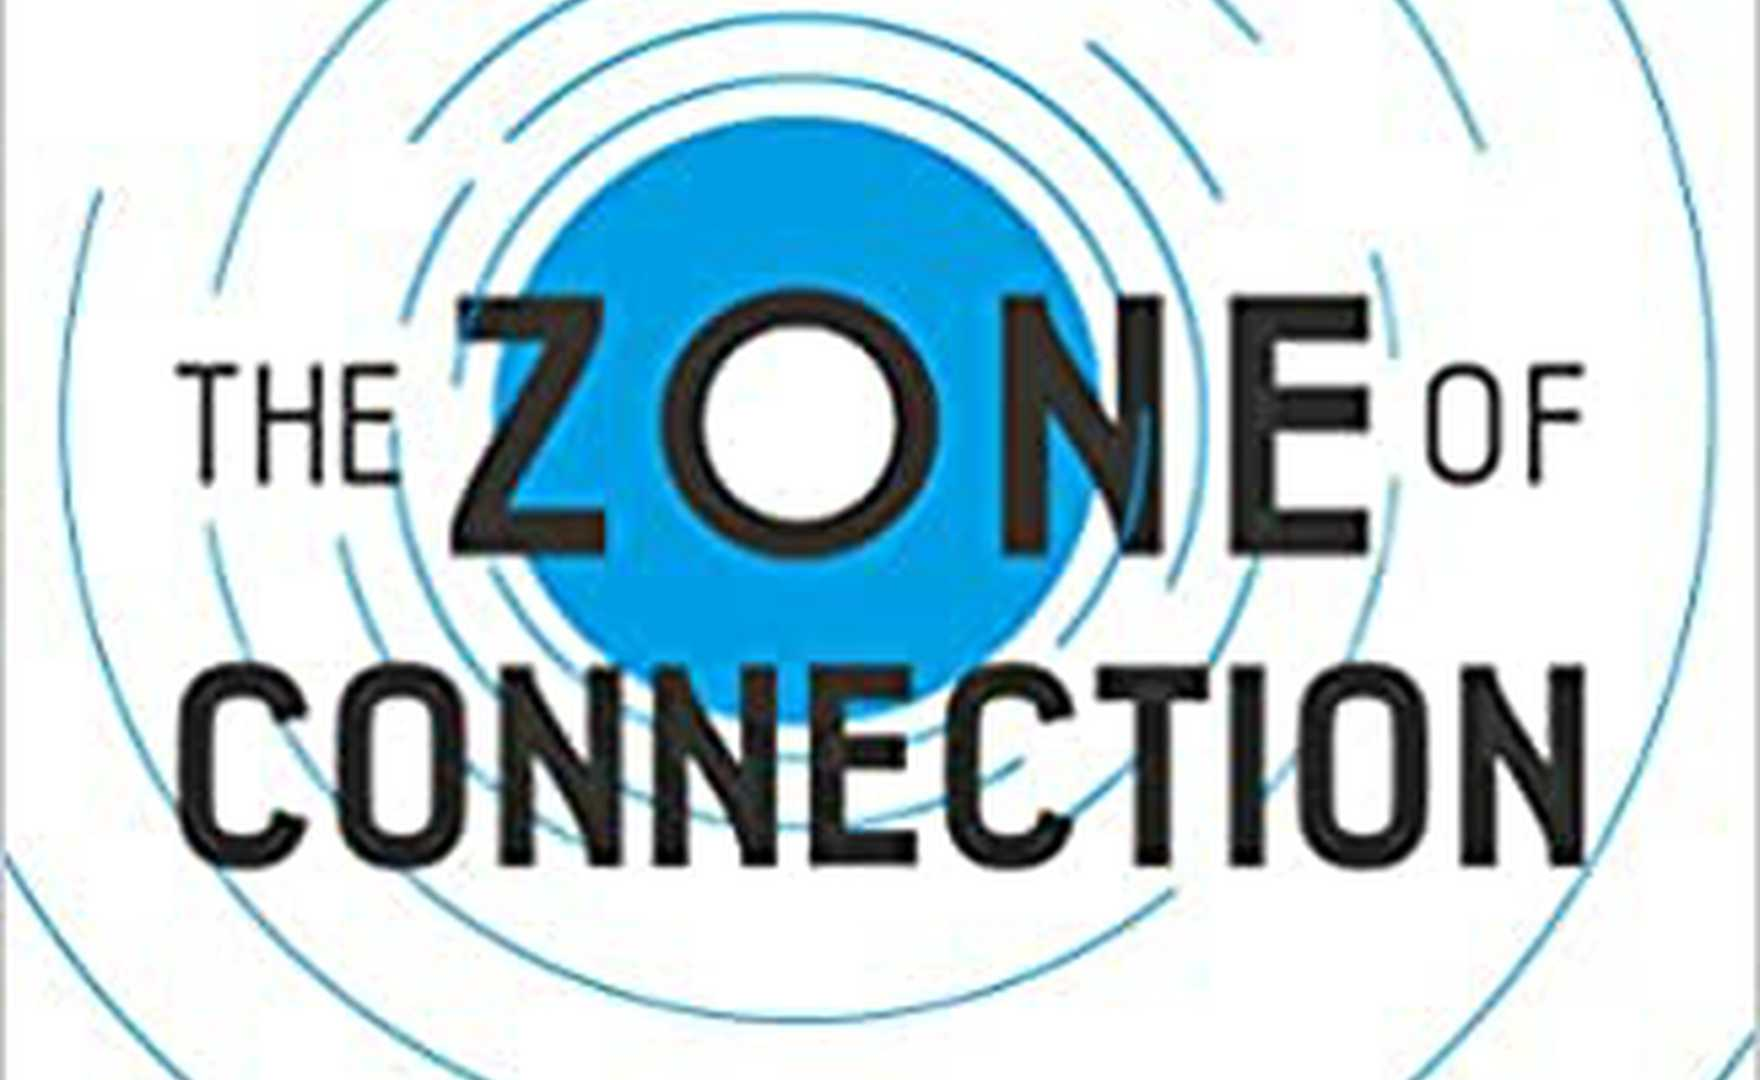 Book review - Zone of Connection by Sue Coyne